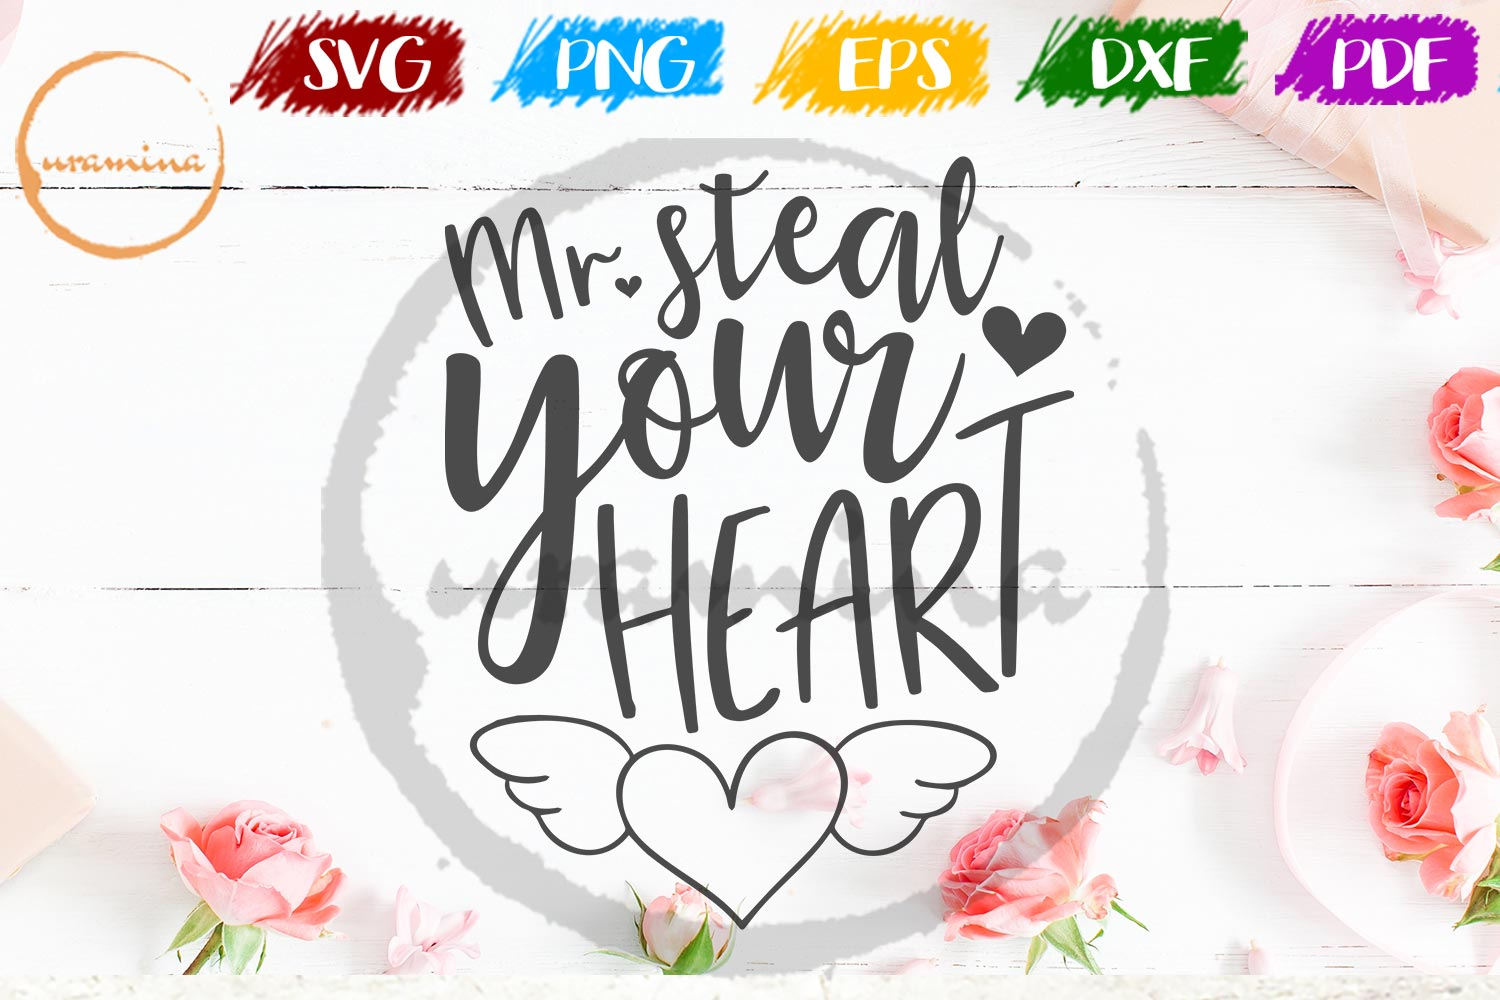 Download Free Mr Steal Your Heart Graphic By Uramina Creative Fabrica for Cricut Explore, Silhouette and other cutting machines.